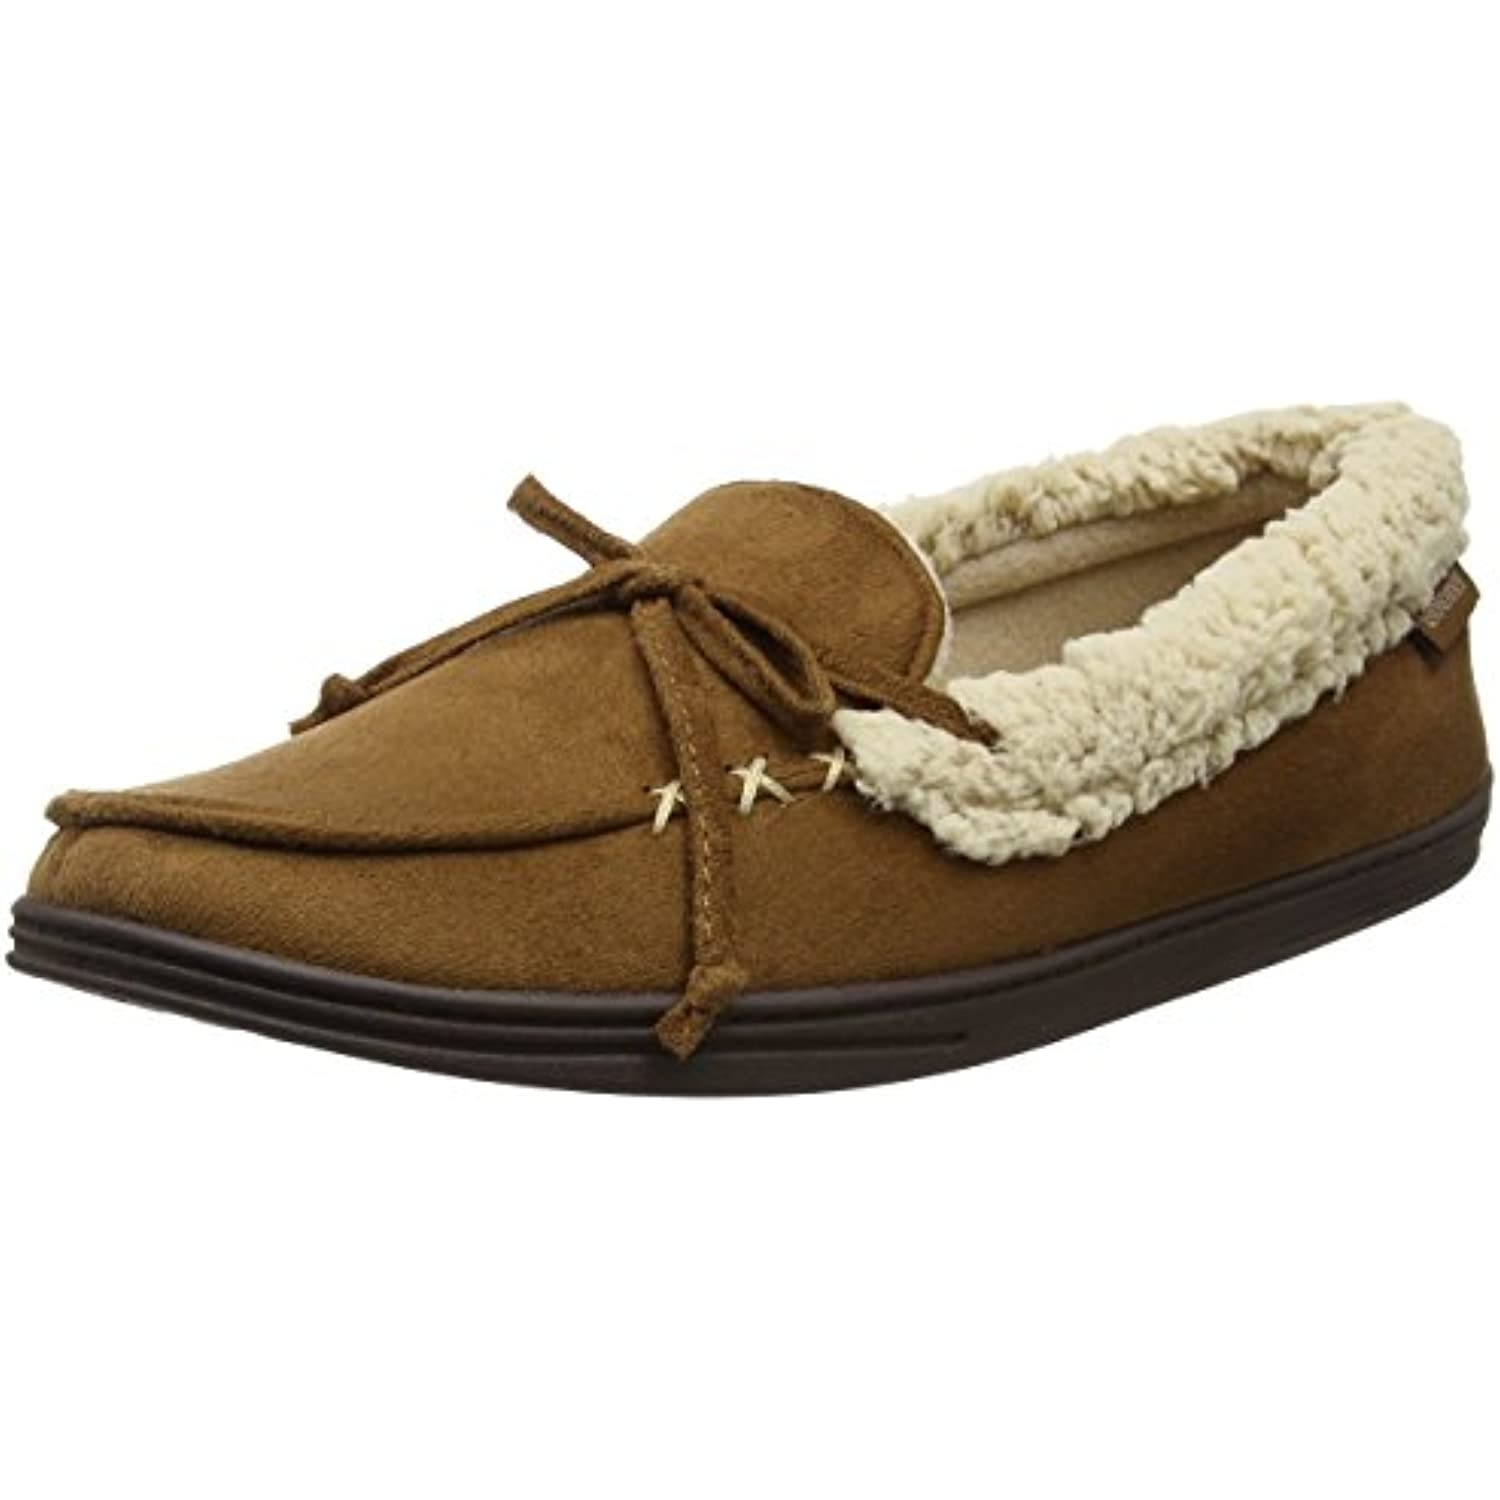 Isotoner Isotoner Isotoner Suedette Moccasin Slippers, Chaussons Homme - B06XZ714ST - b0fffb